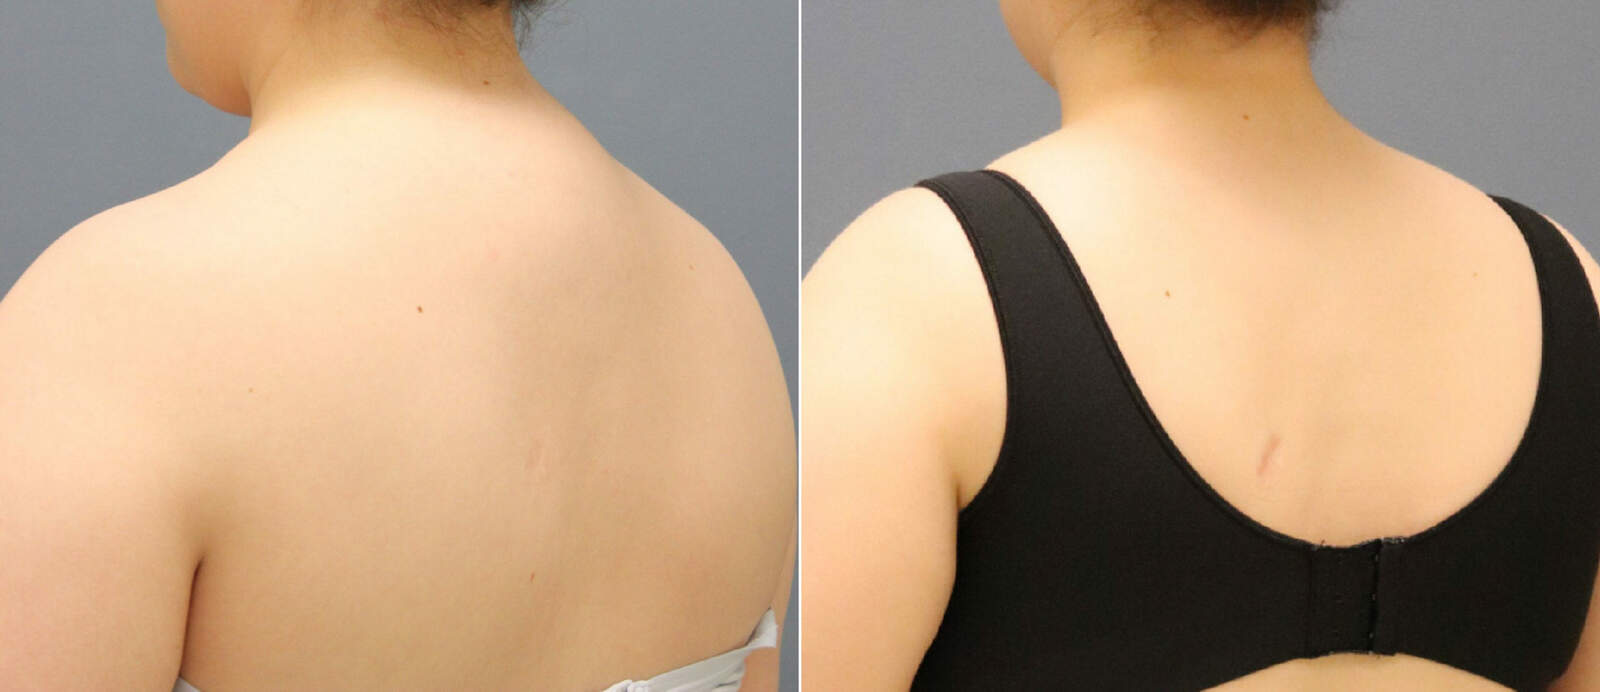 Before and After Photos in , , Liposuction in Lexington, KY